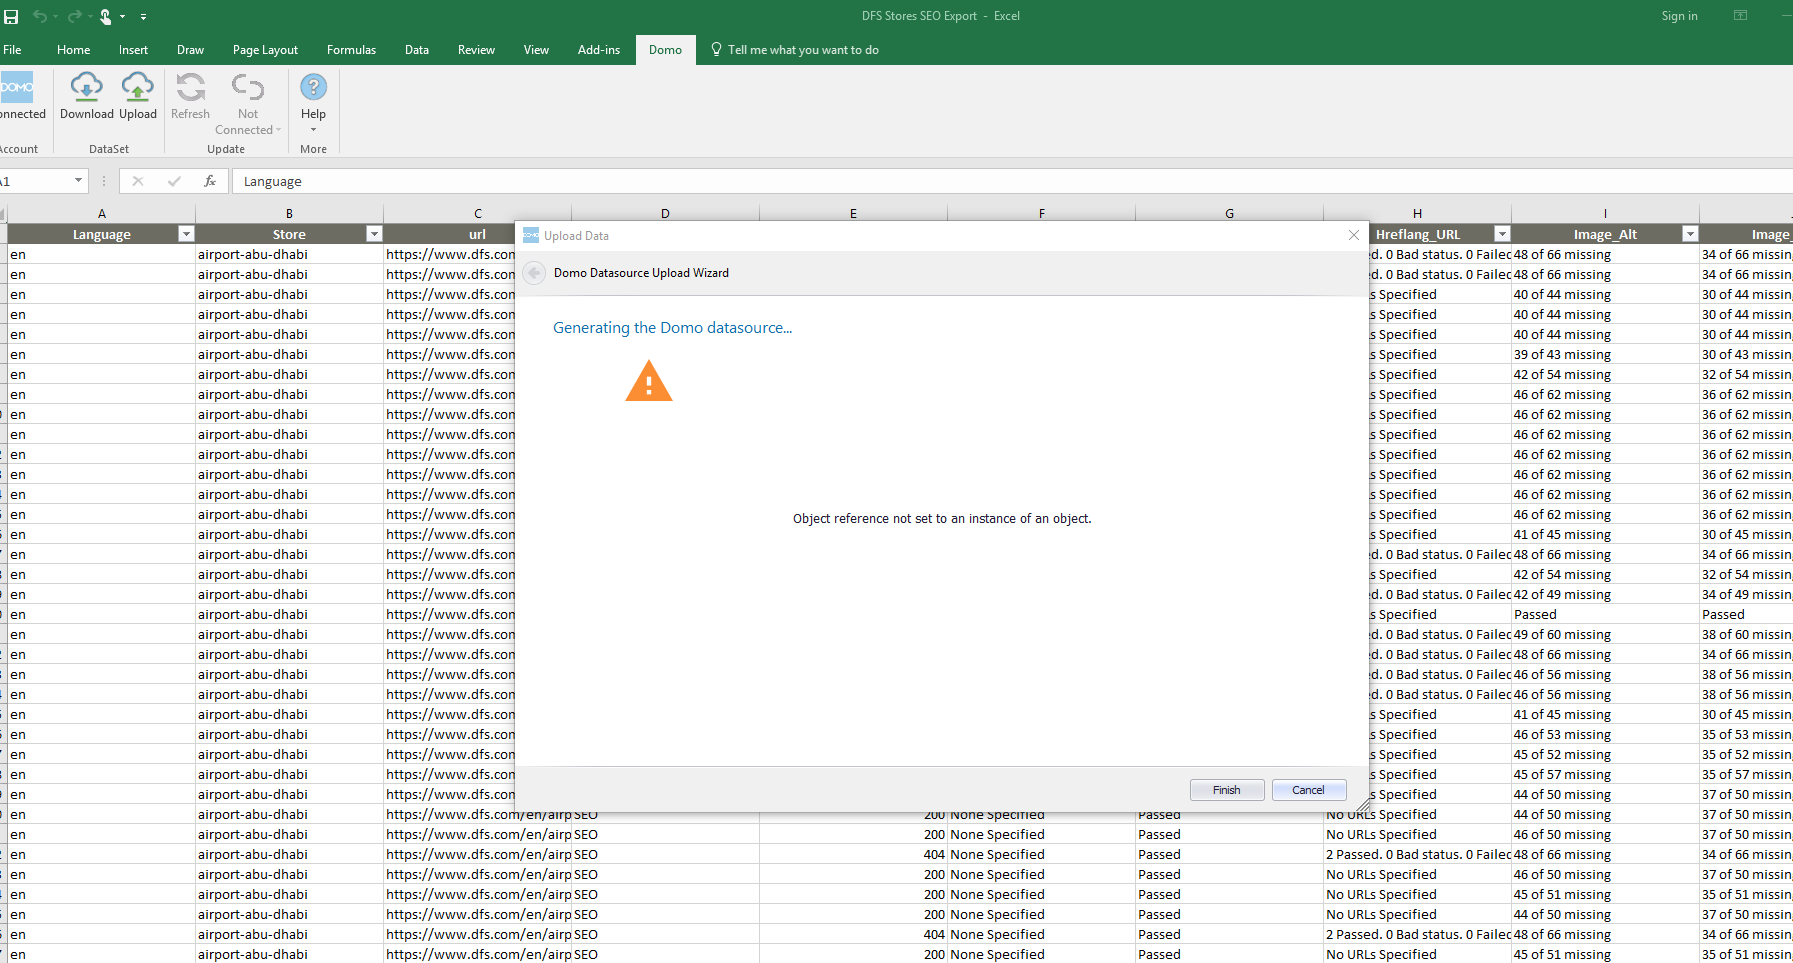 Excel plugin issue.PNG